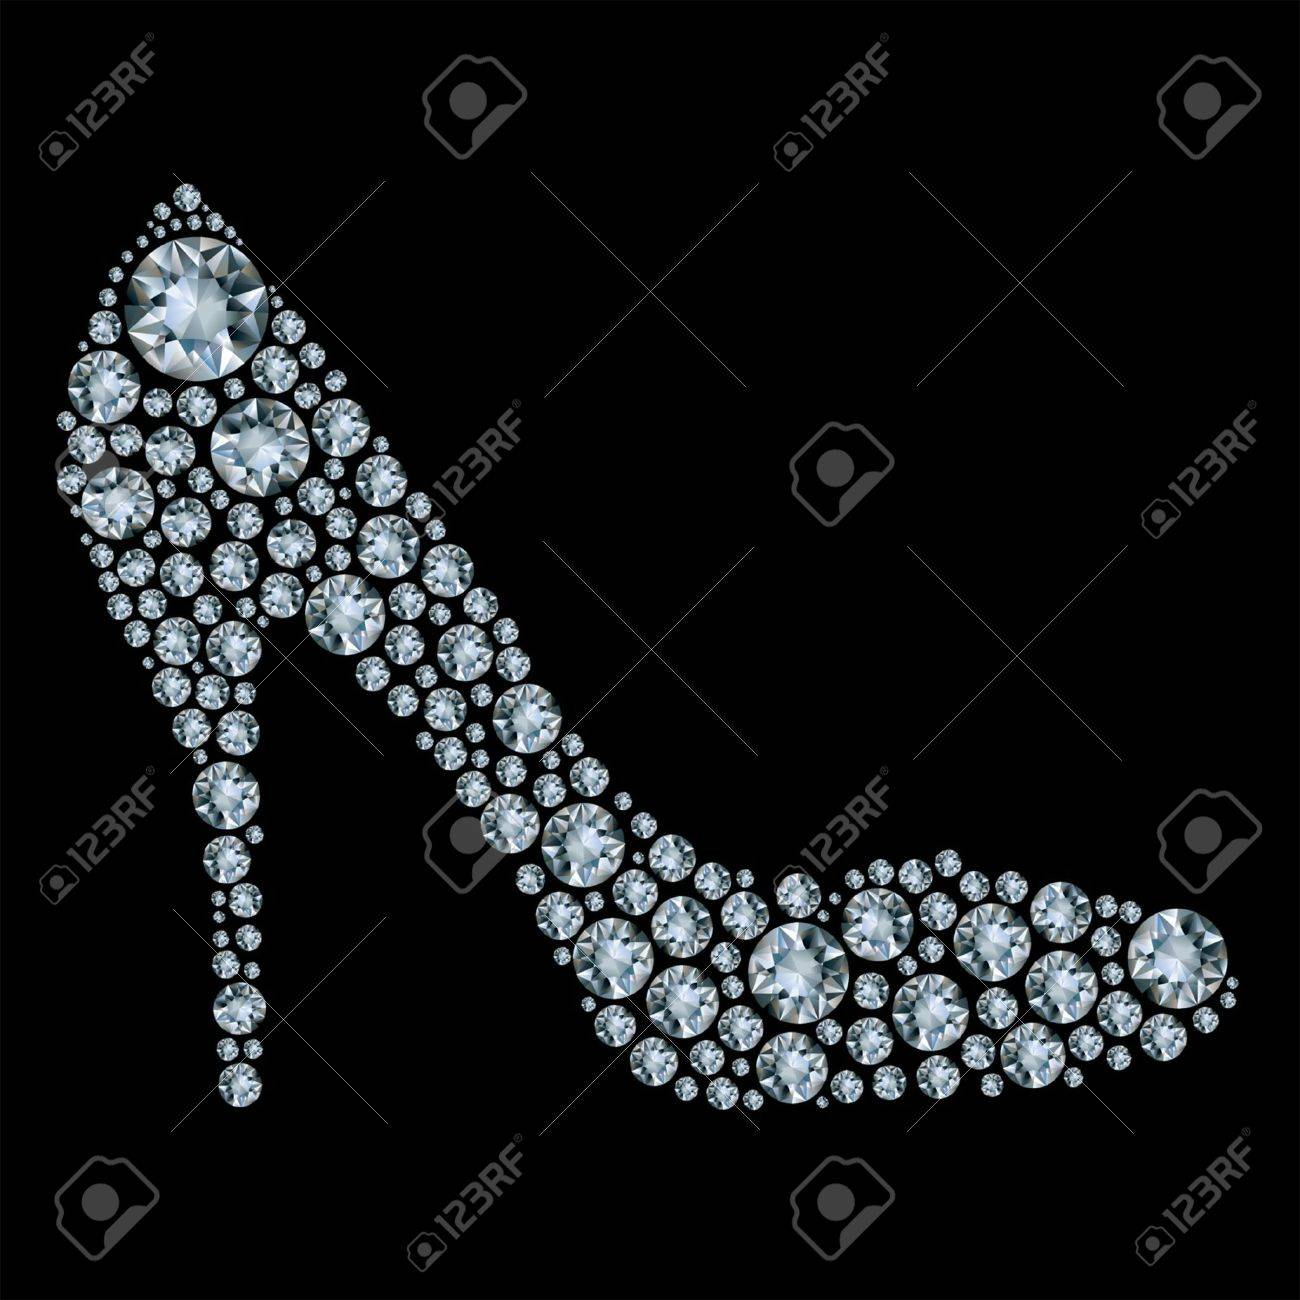 Shoes shape made up a lot of diamond on the black background Stock Vector - 9626034